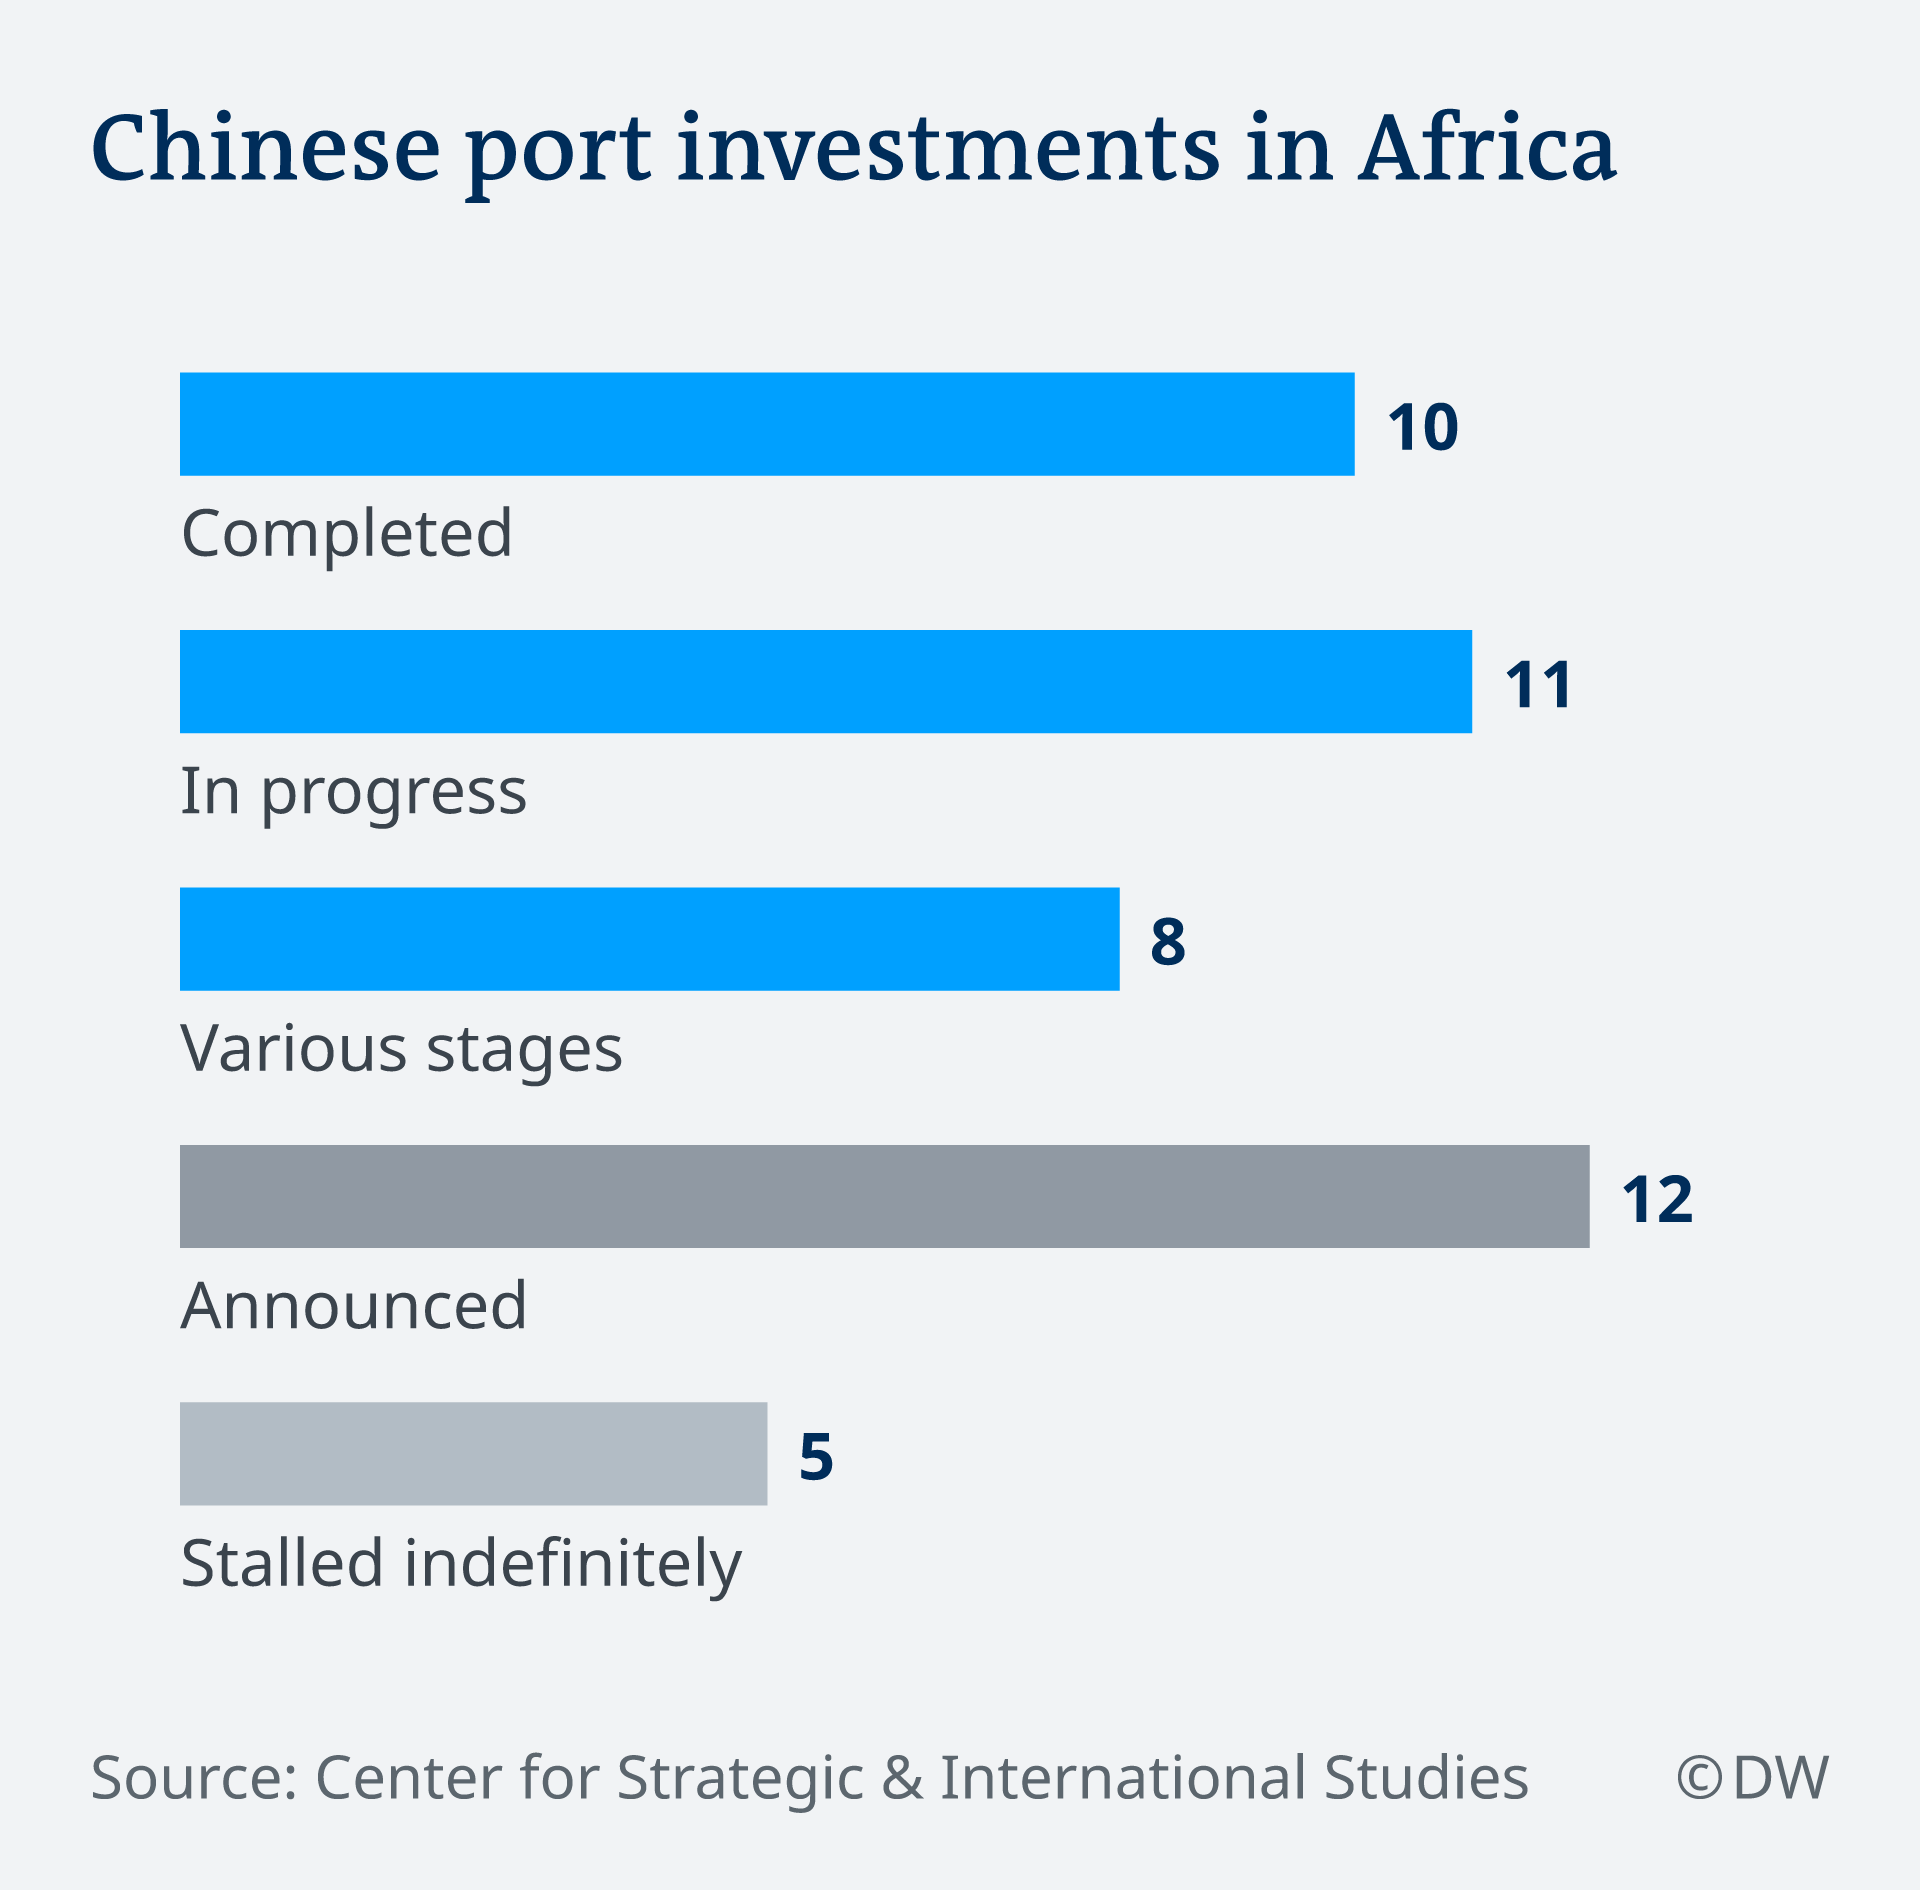 Chenise investments in African ports EN